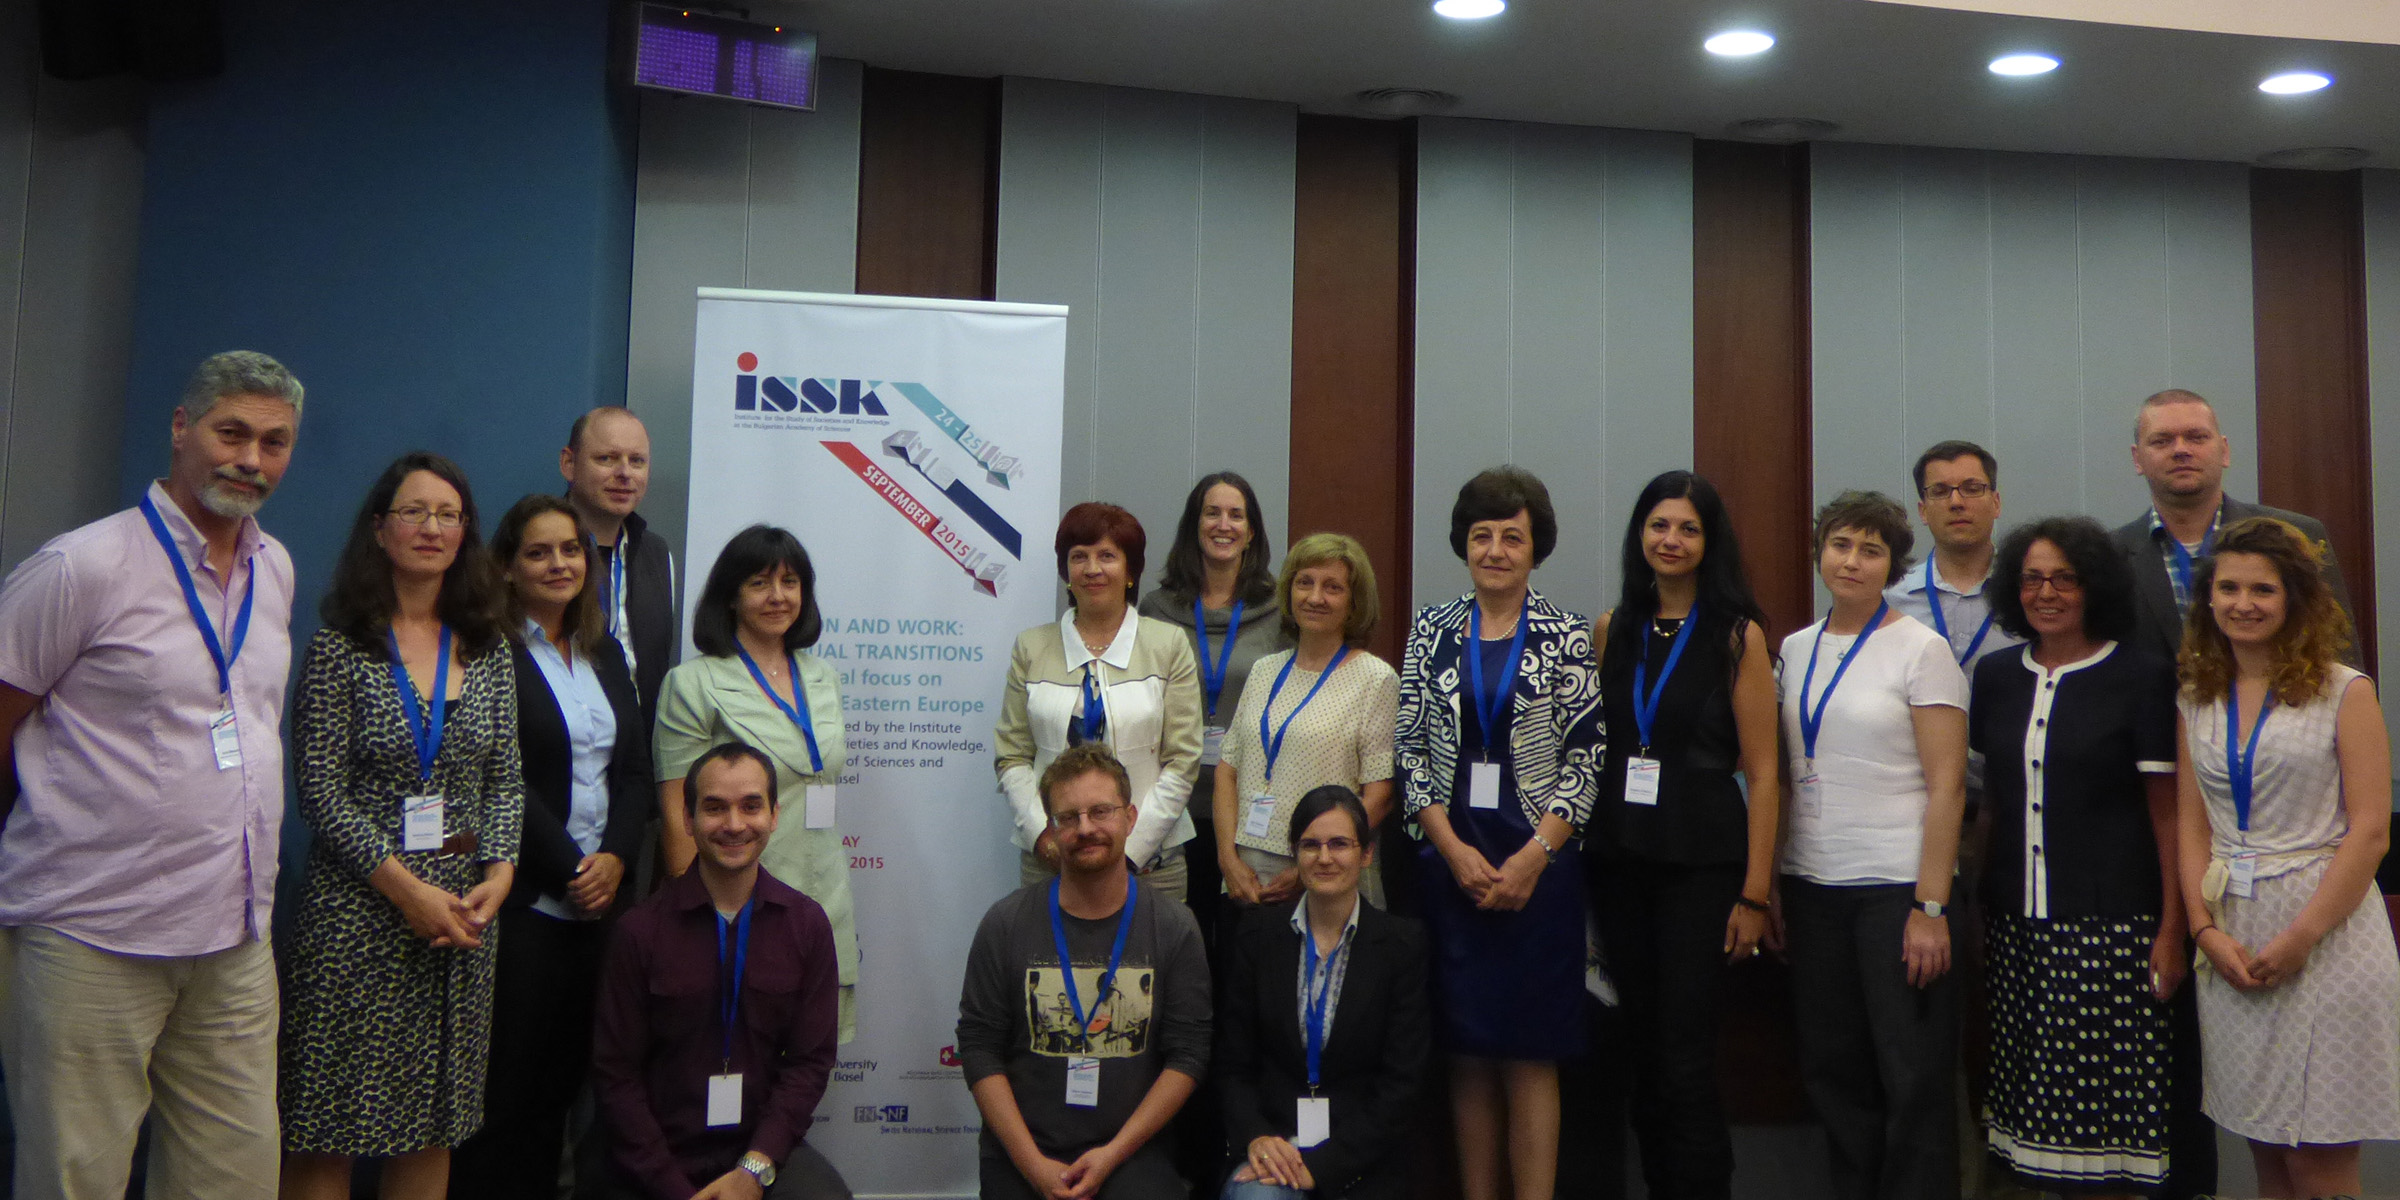 Pictures of the participants at the conference